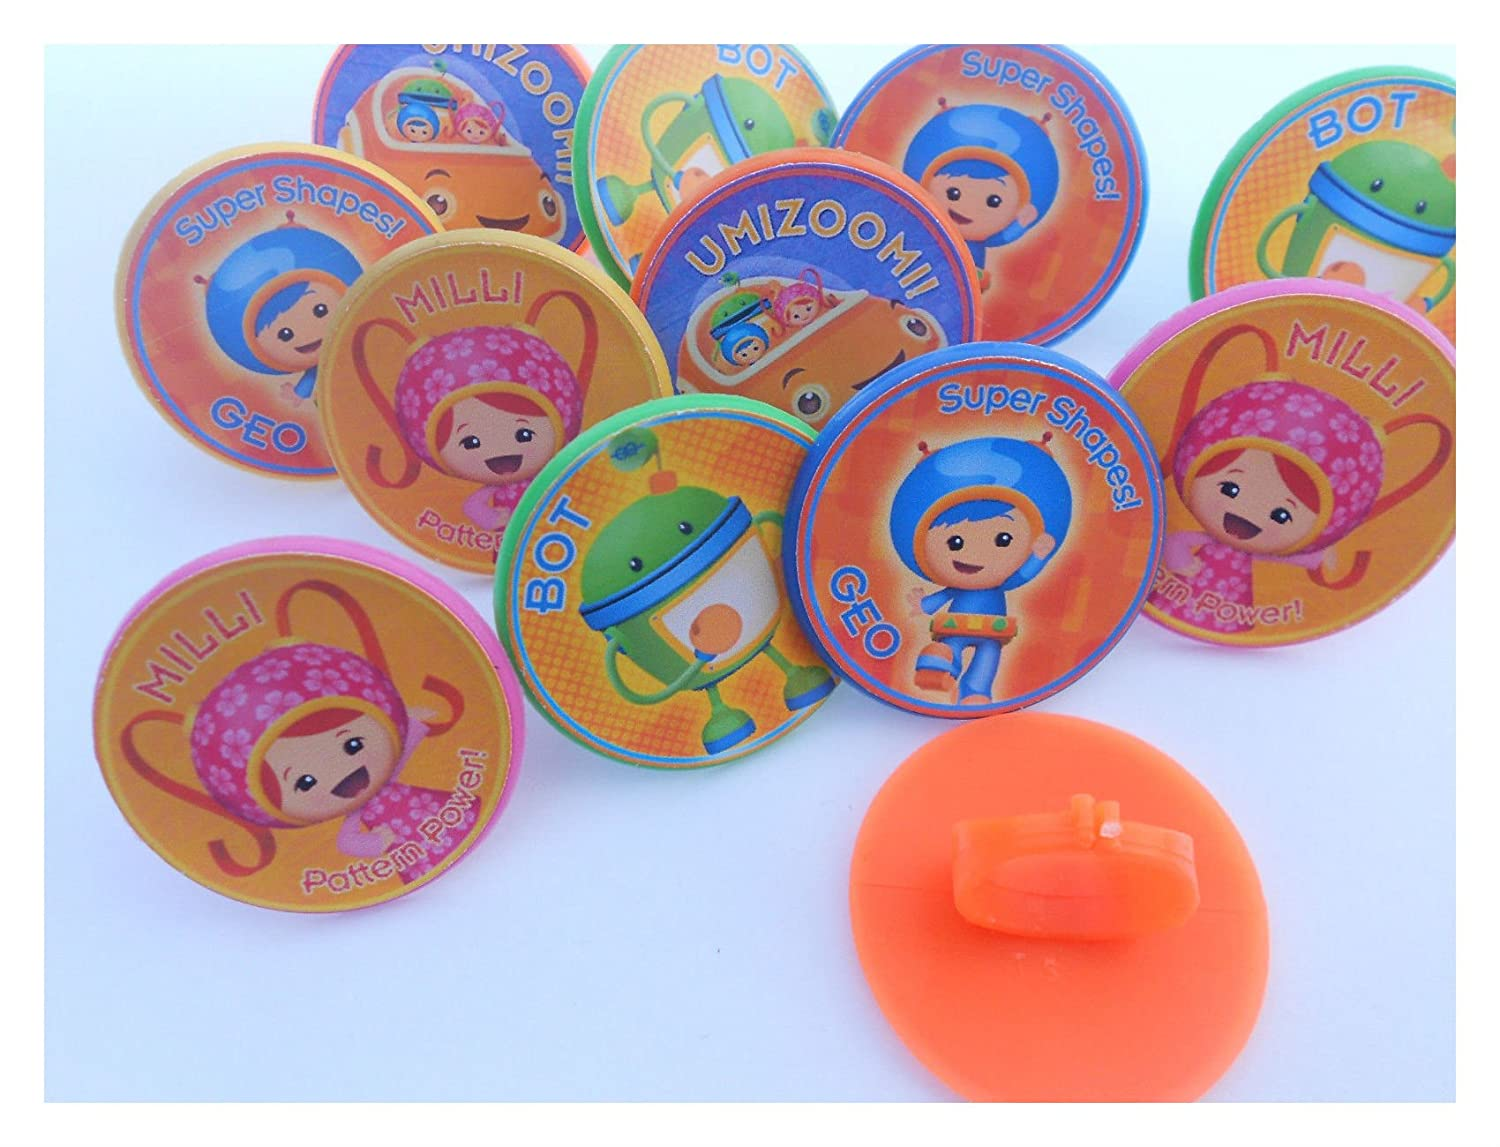 12 Team Umizoomi Rings Cupcake Toppers